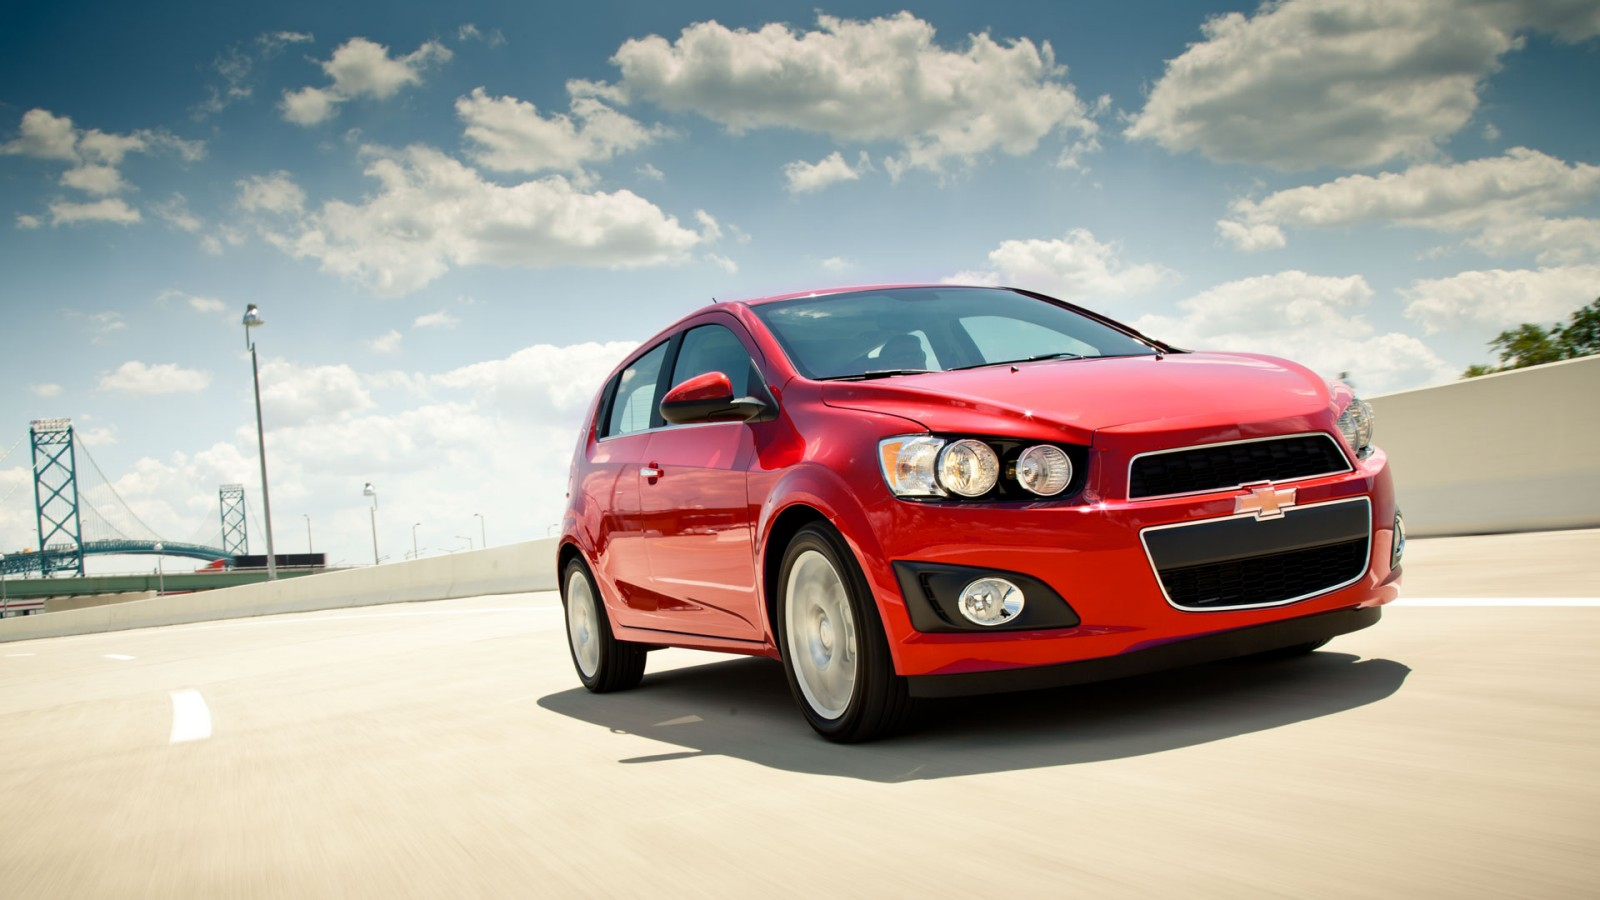 2016 Chevrolet Sonic in action